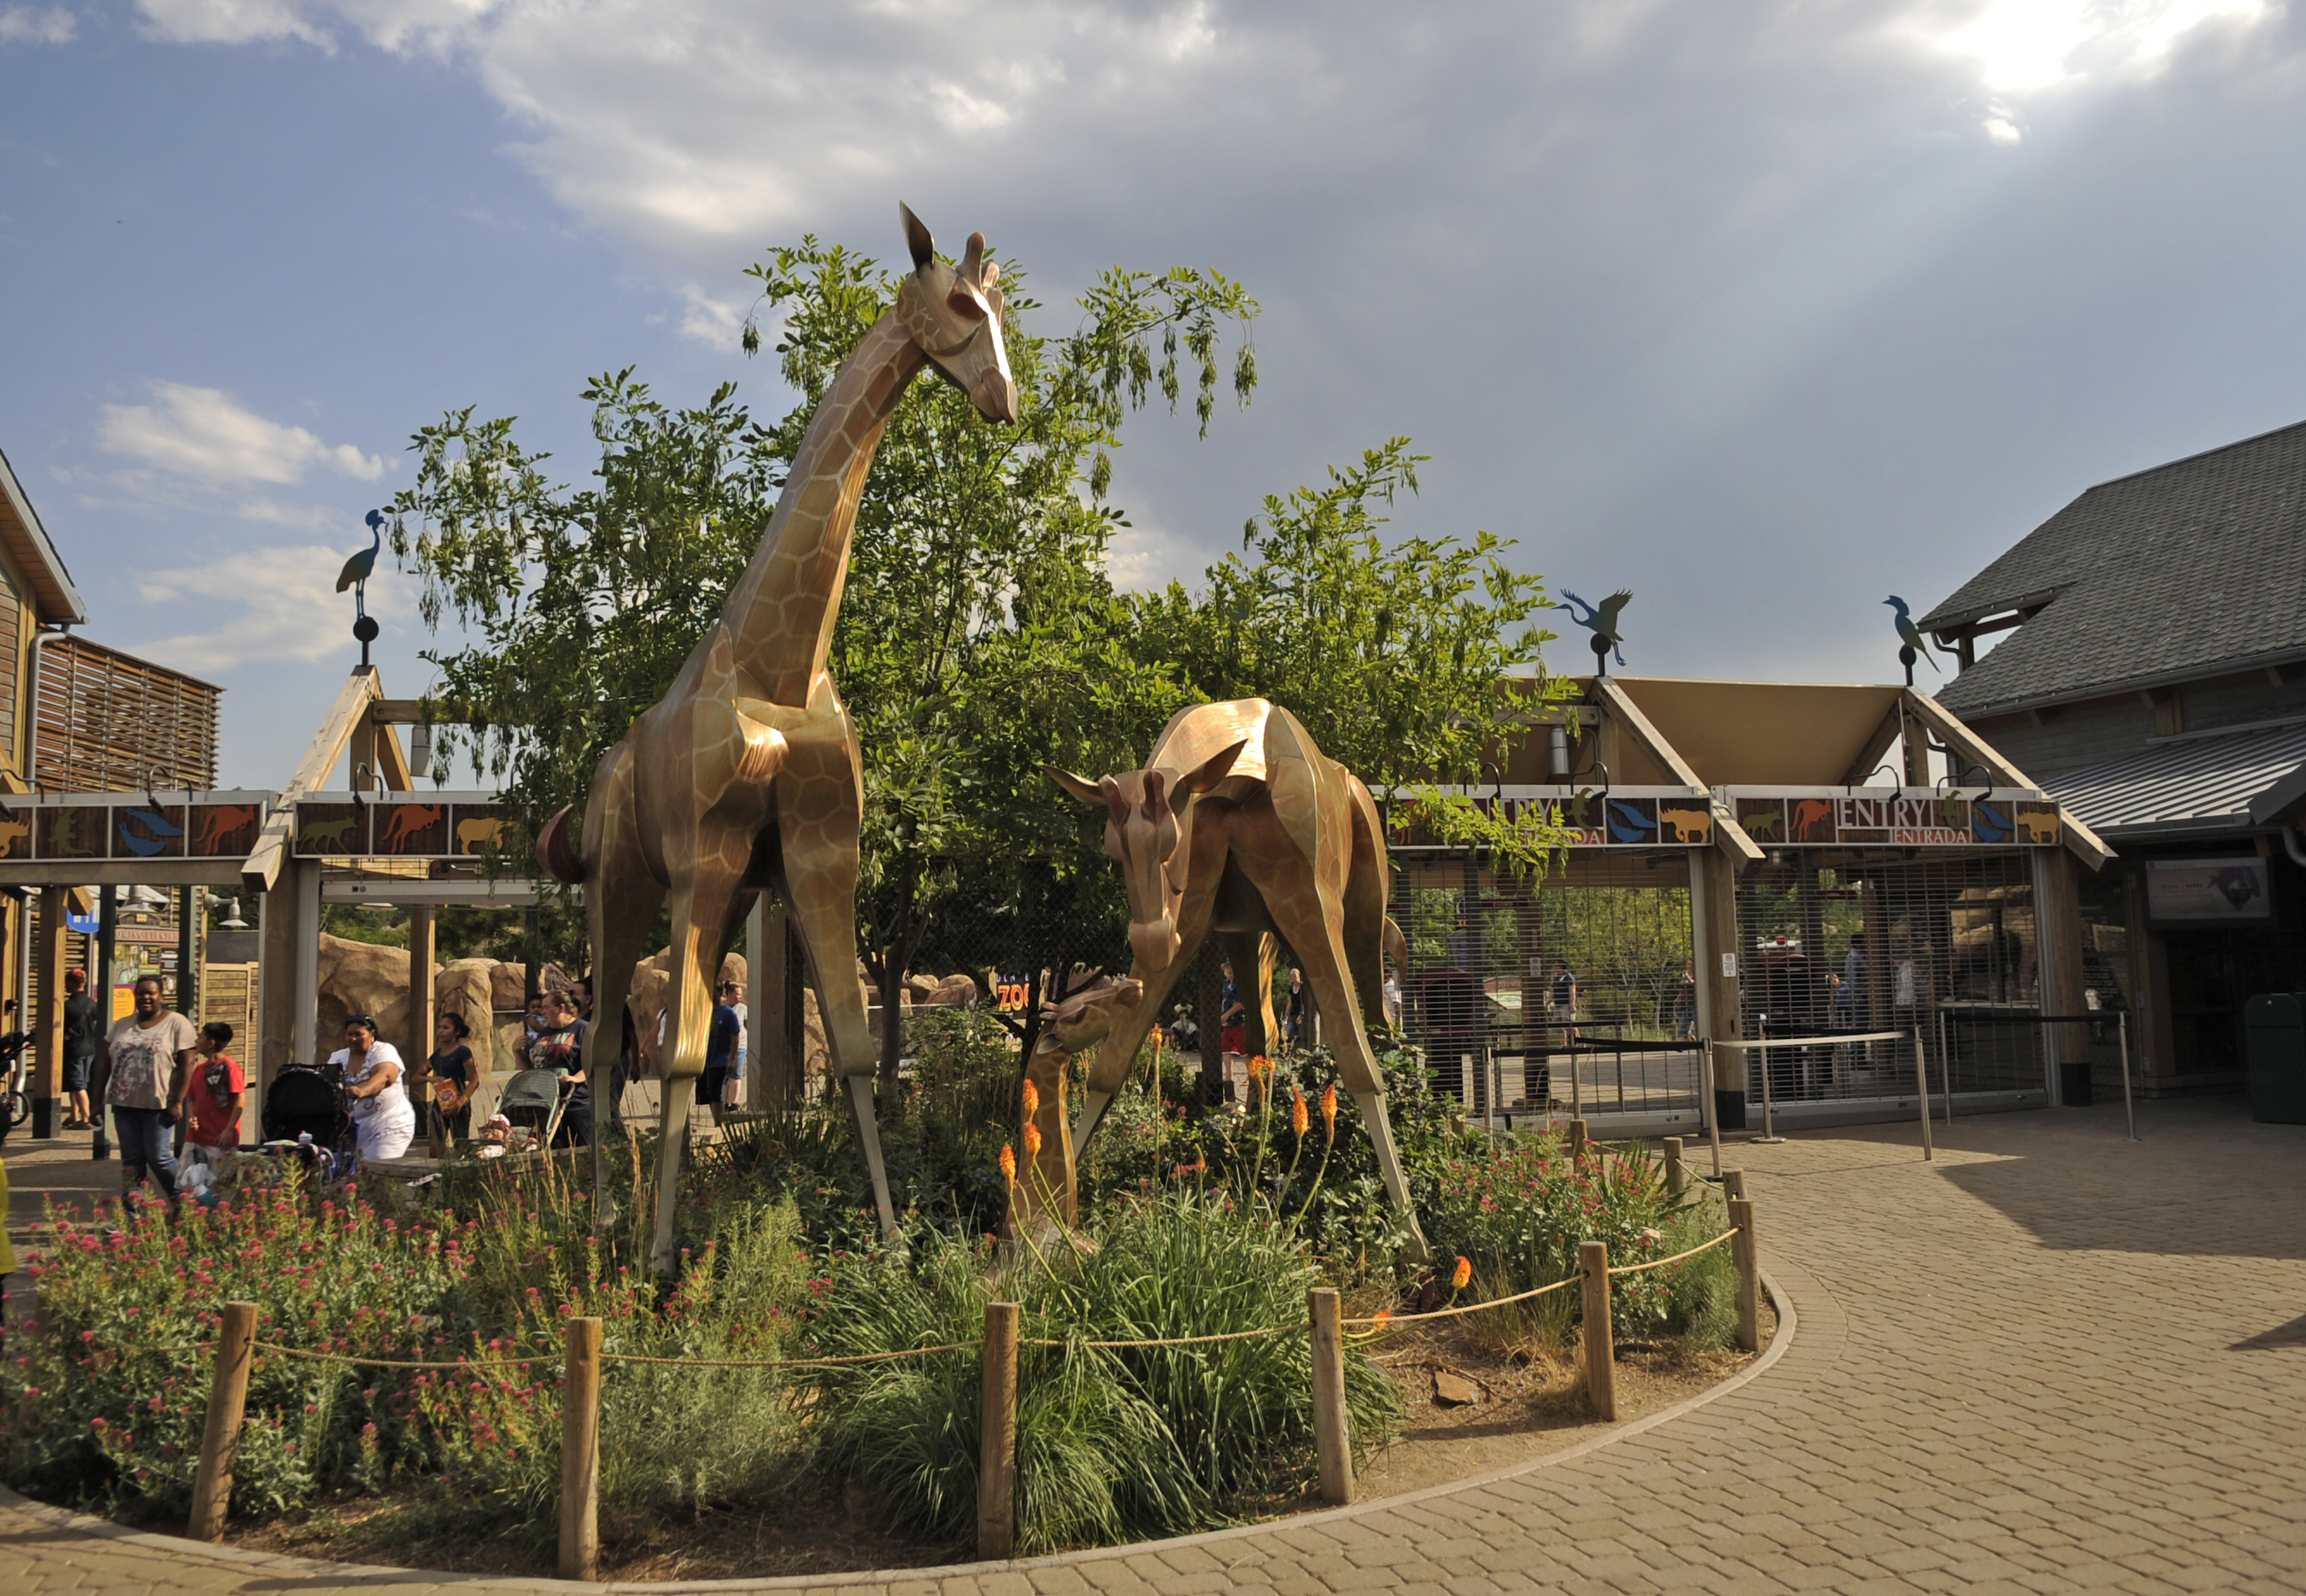 denver zoo, things to do in denver this weekend